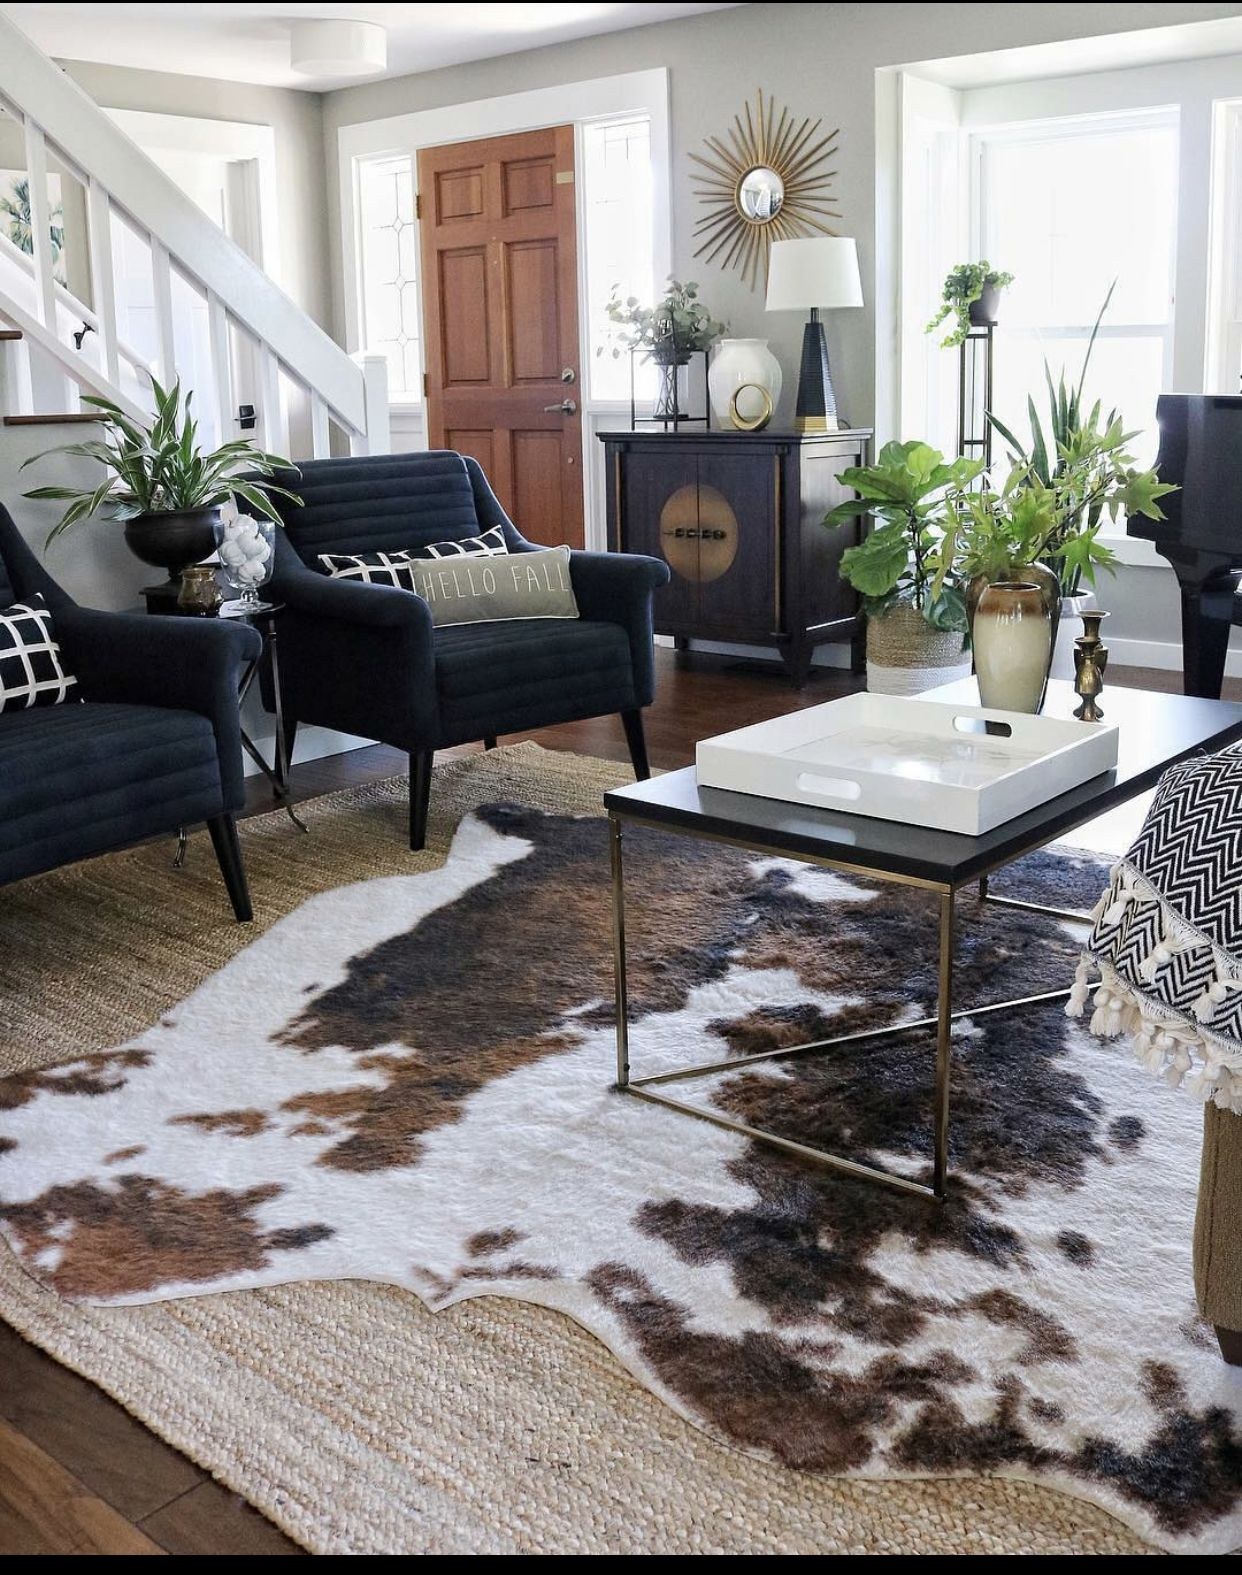 Pin By Patricia Jansons On Tips Around The House Rugs In Living Room Hide Rug Living Room Farm House Living Room